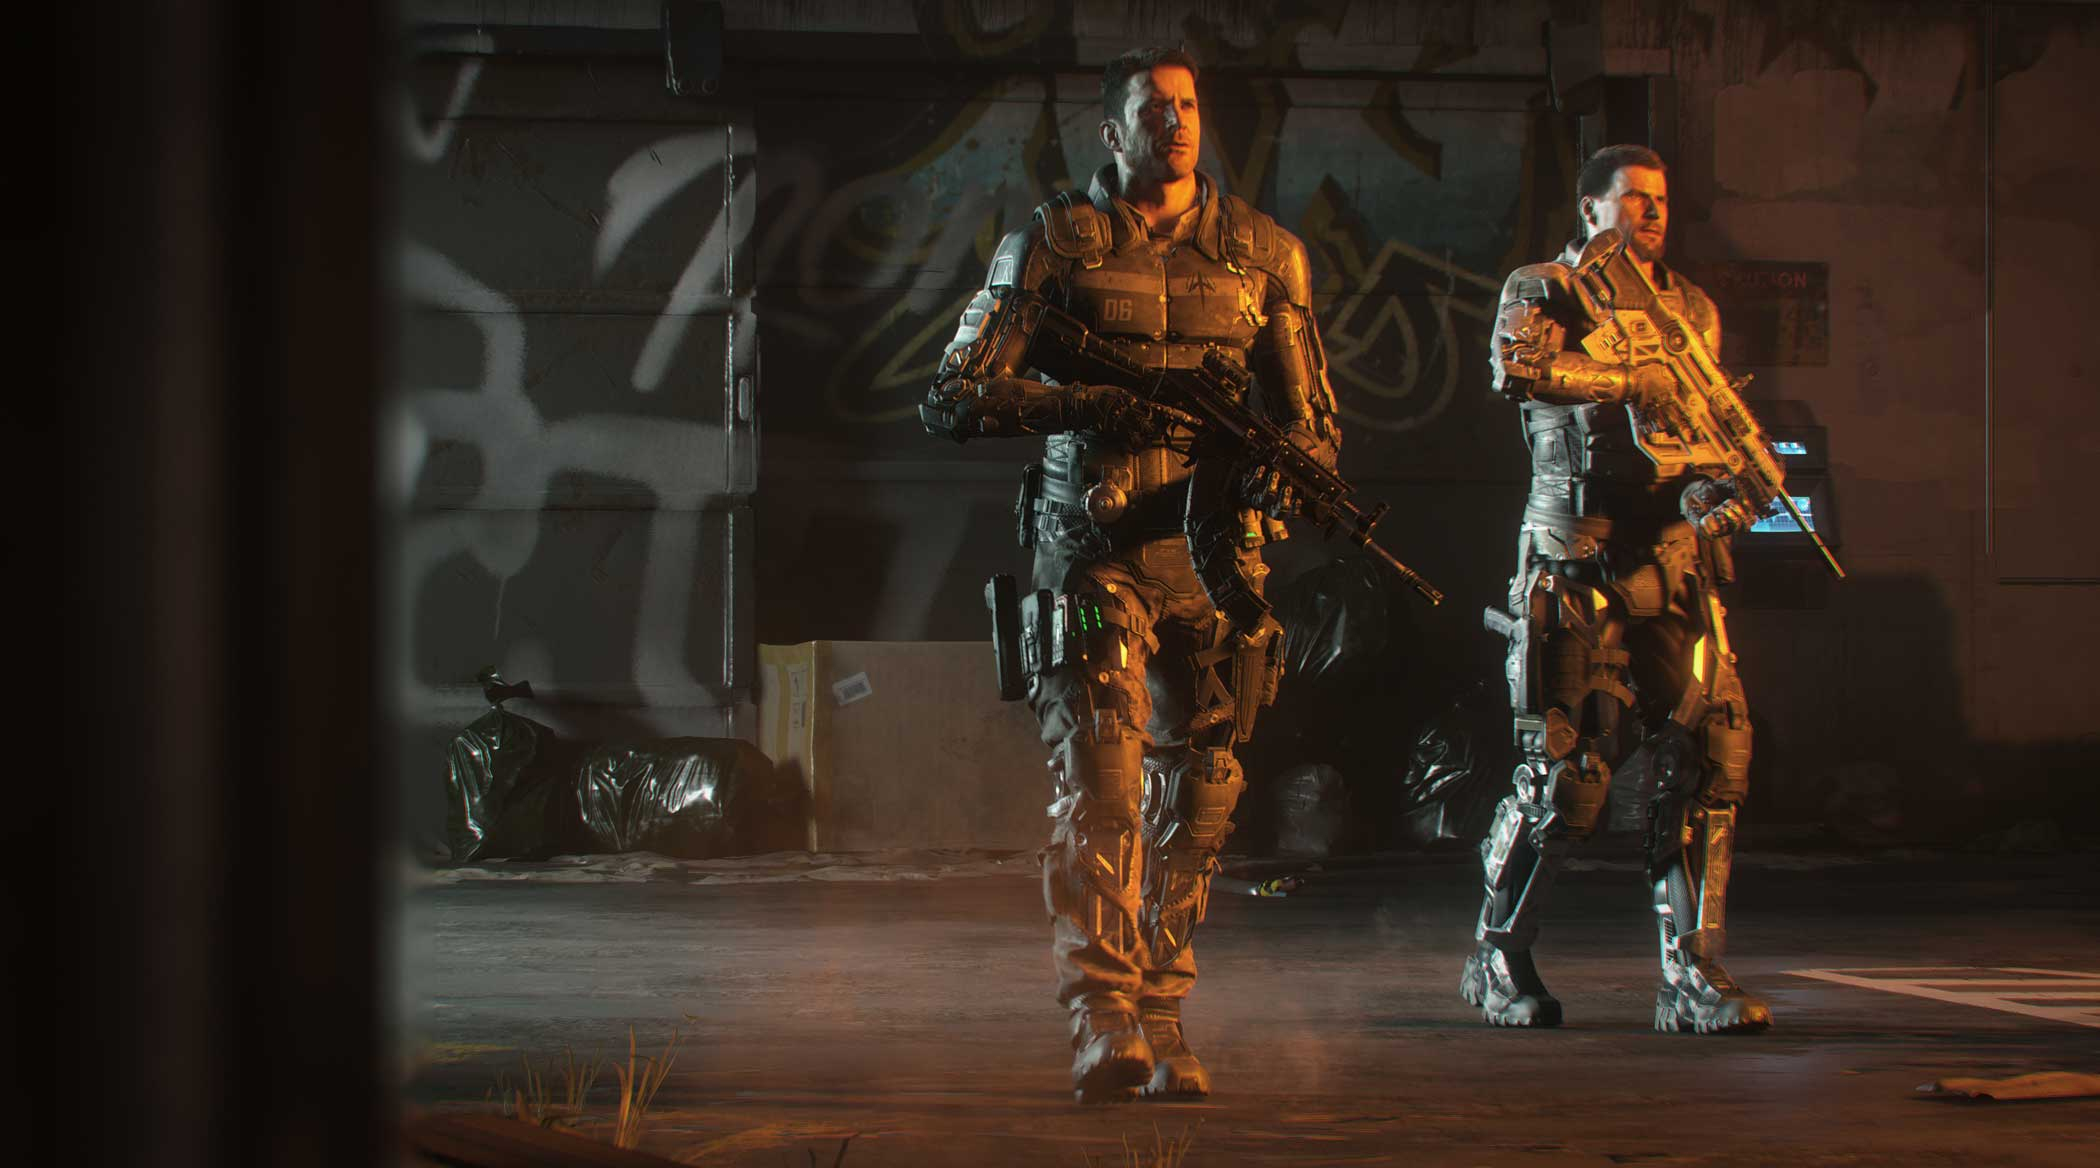 Call of Duty: Black Ops 3 Design Process:  We're most proud when our technology enables gameplay or player expression, such as battling through the dynamic water or creating unique weapon skins.  - Mark Gordon, VP of Development & CTO, Treyarch